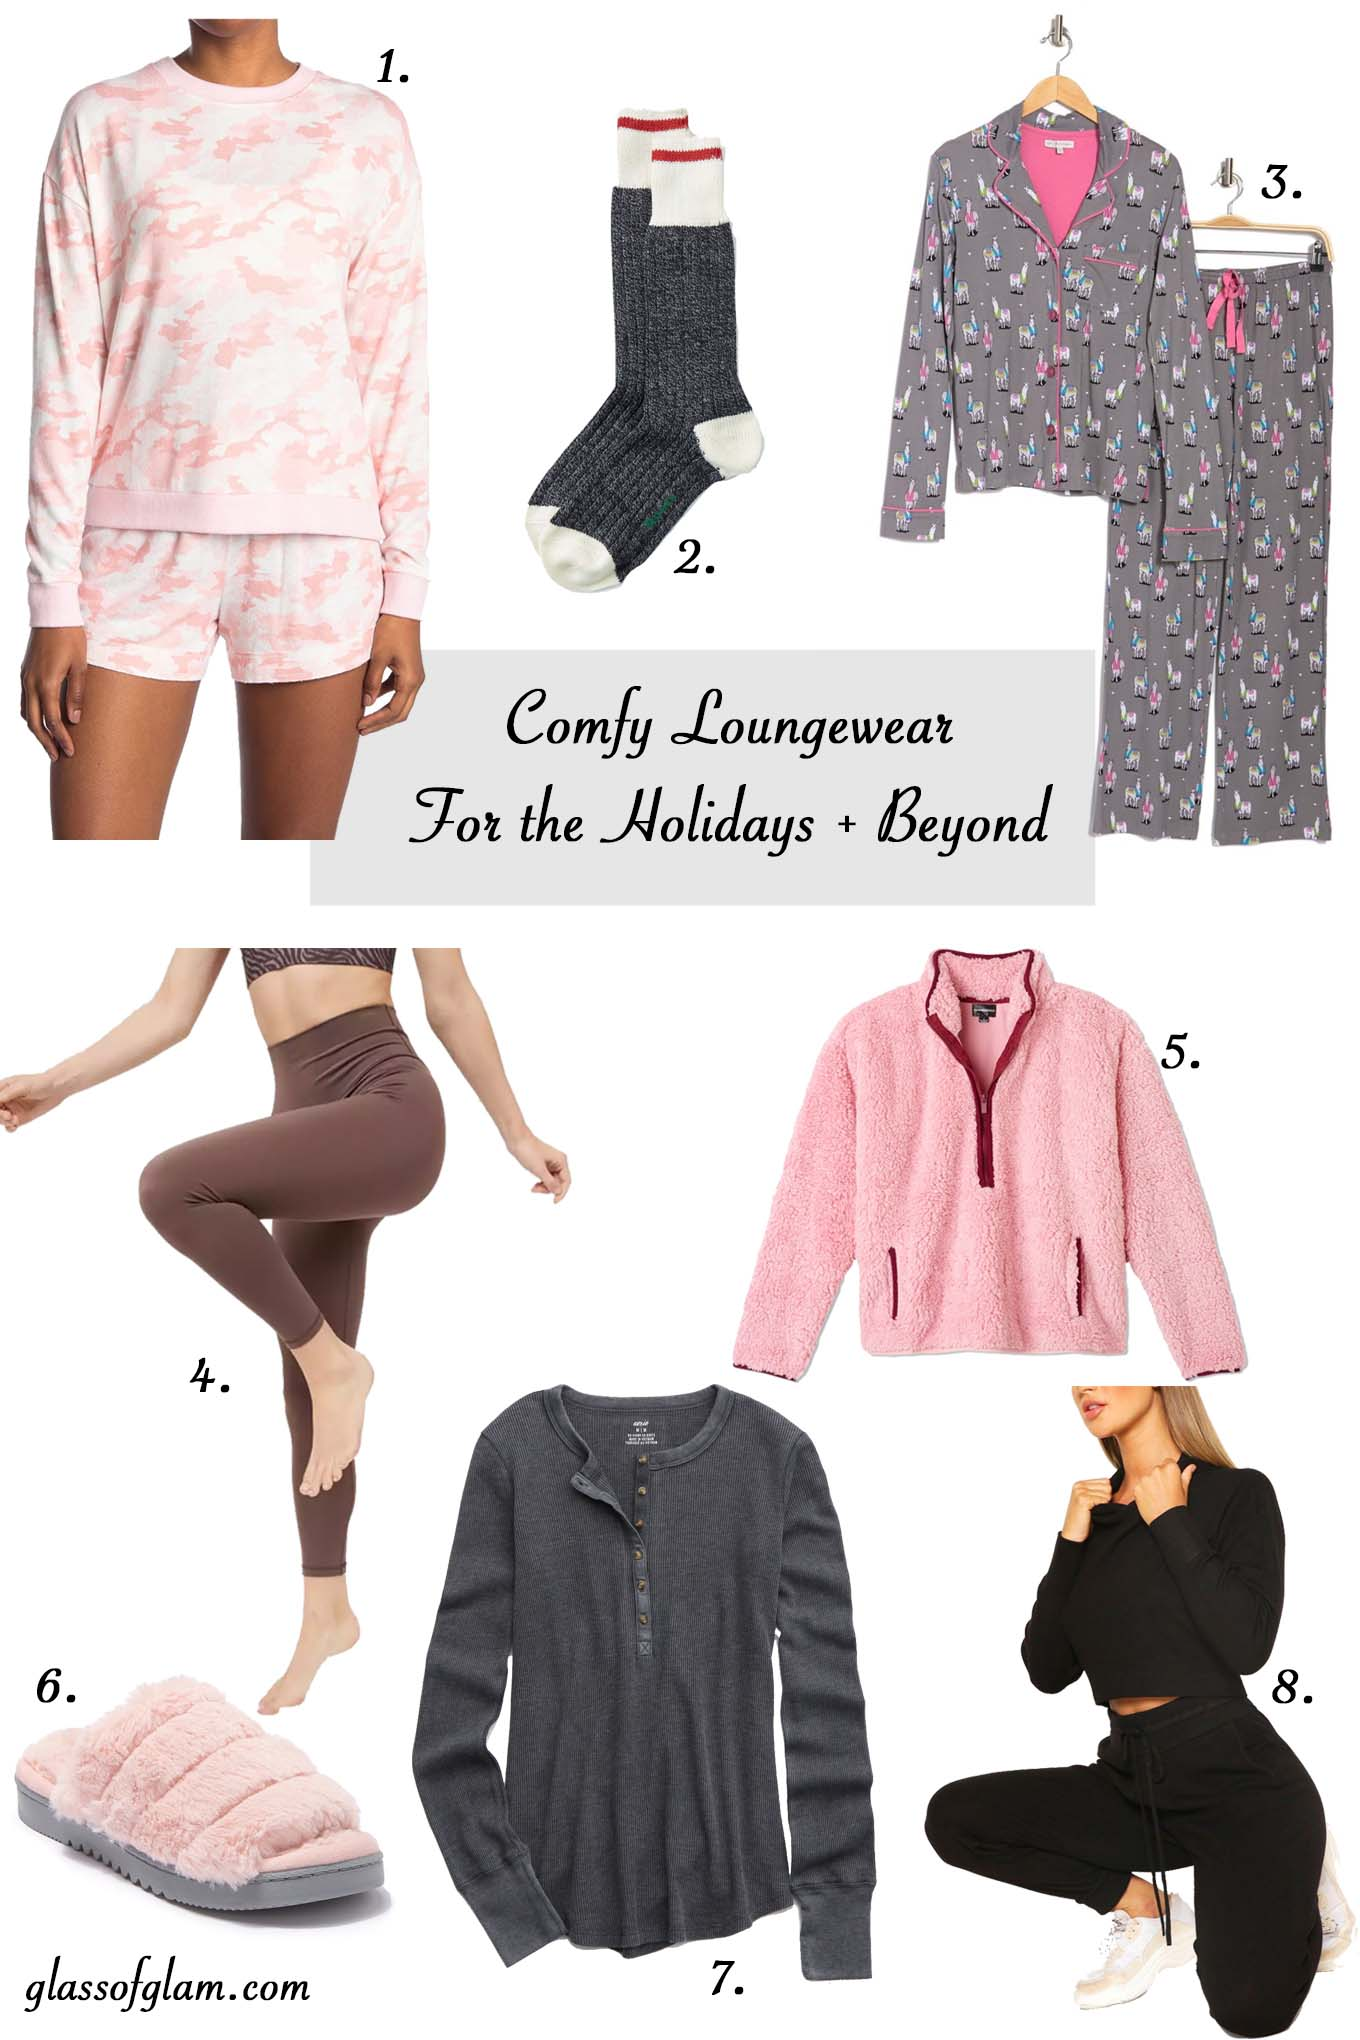 Womens Loungewear by popular Chicago fashion blog, Glass of Glam: collage image of loungewear sets, slippers, and socks.